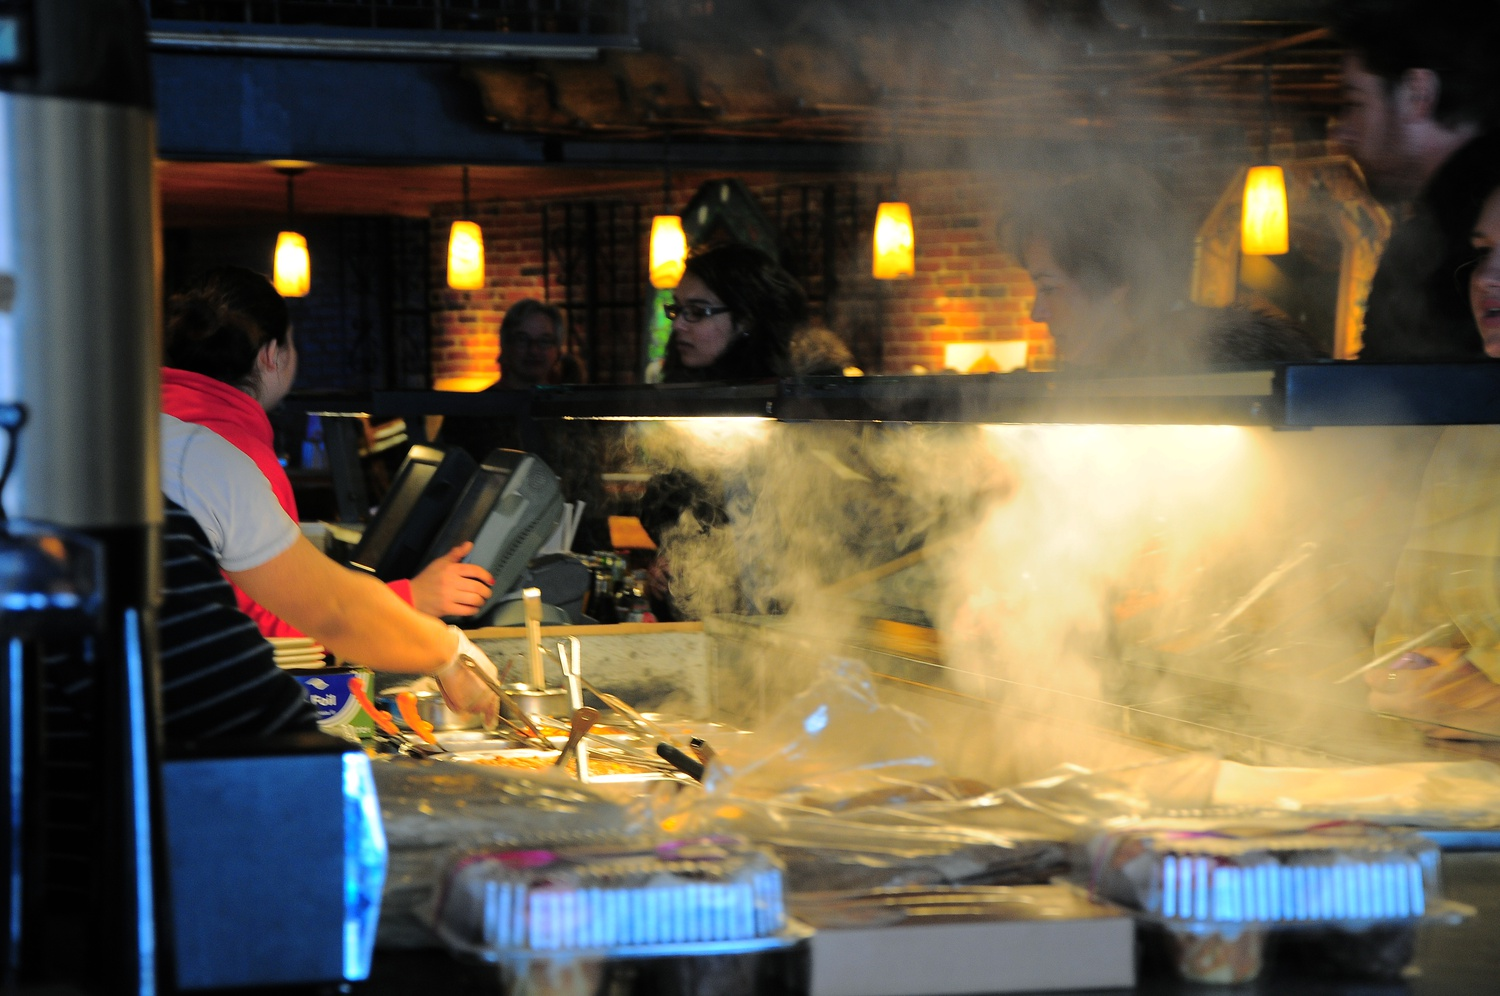 Smoke rises as employees at Felipe's quickly fill burrito orders for customers. Offering a delicious range of Mexican food products such as quesadillas and tacos, Felipe's burritos are one of the most popular items on the menu.